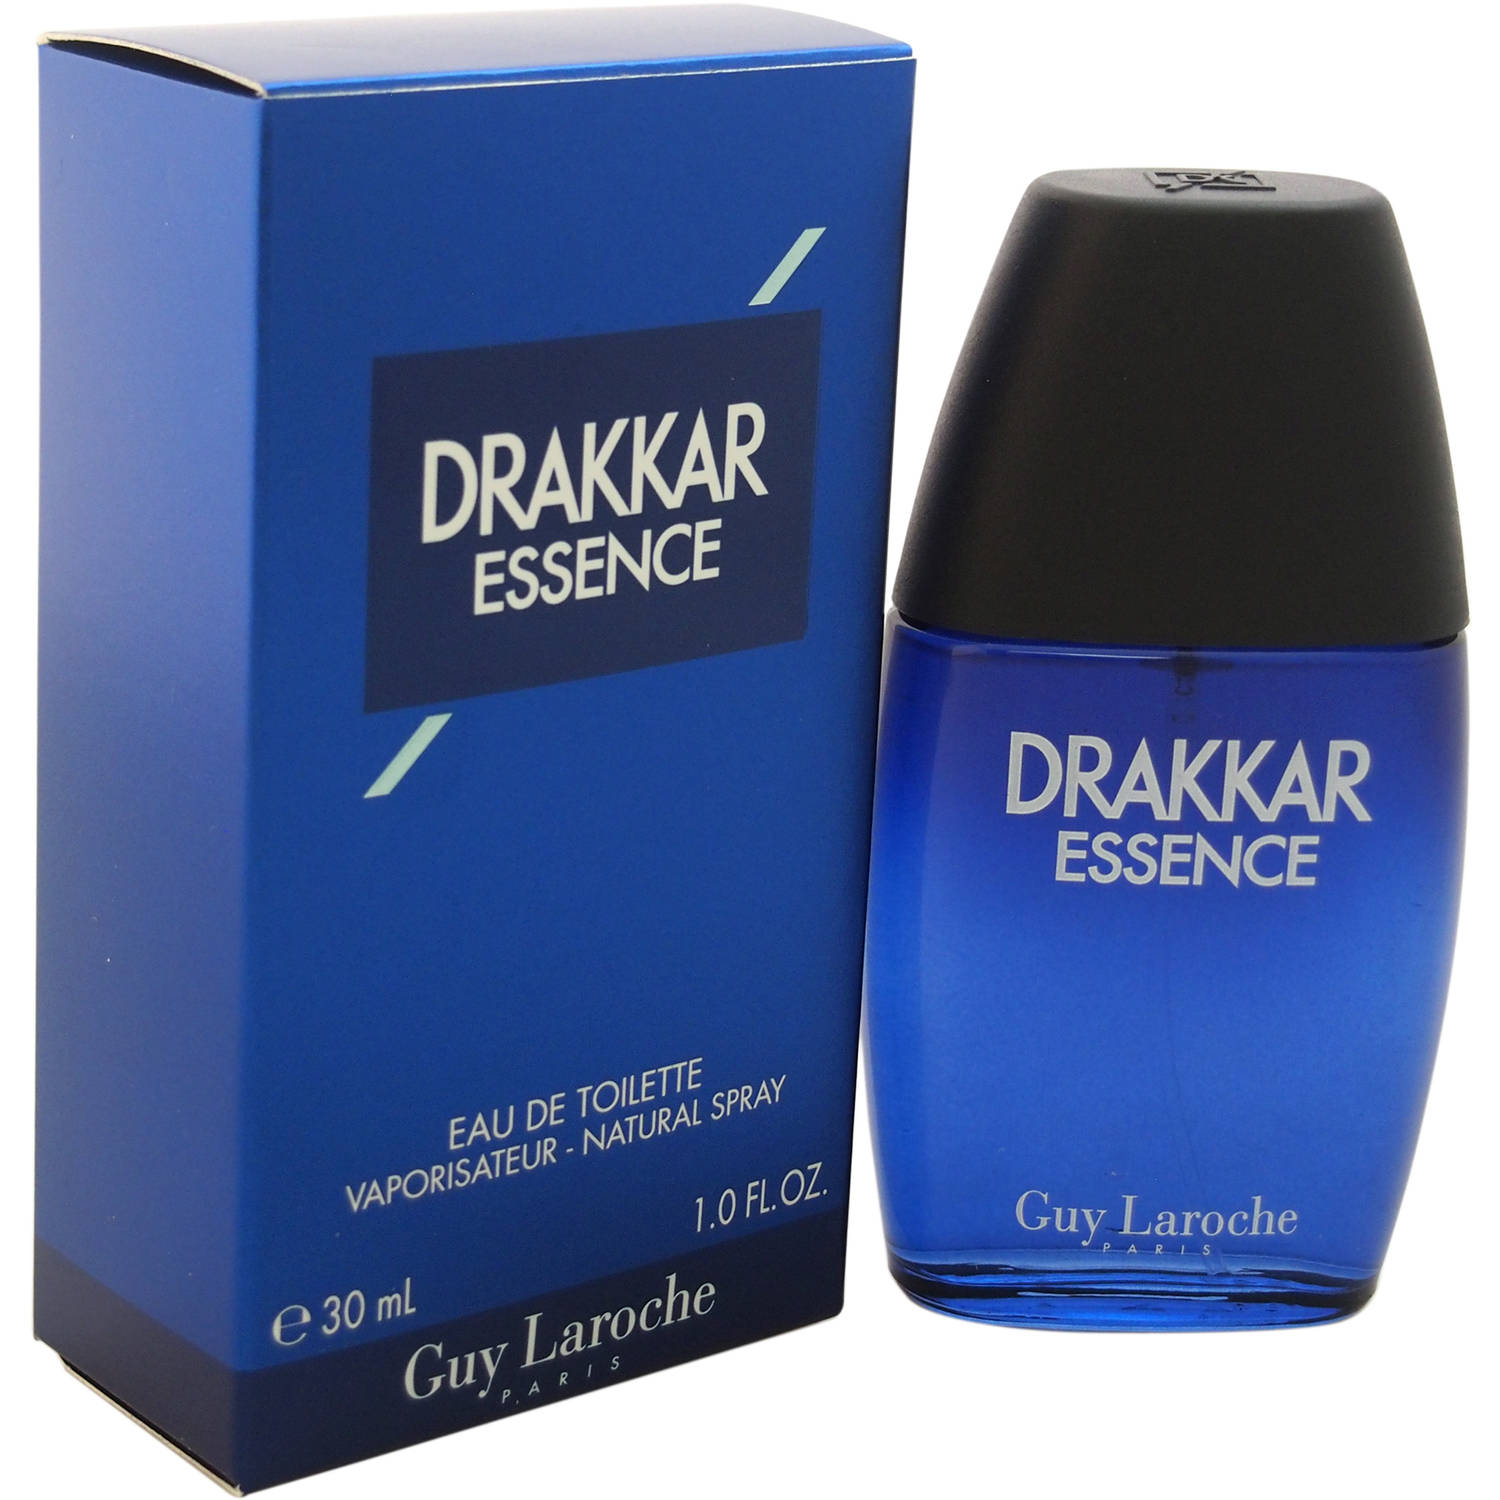 Guy Laroche Drakkar Essence by for Men Eau de Toilette, 1 oz